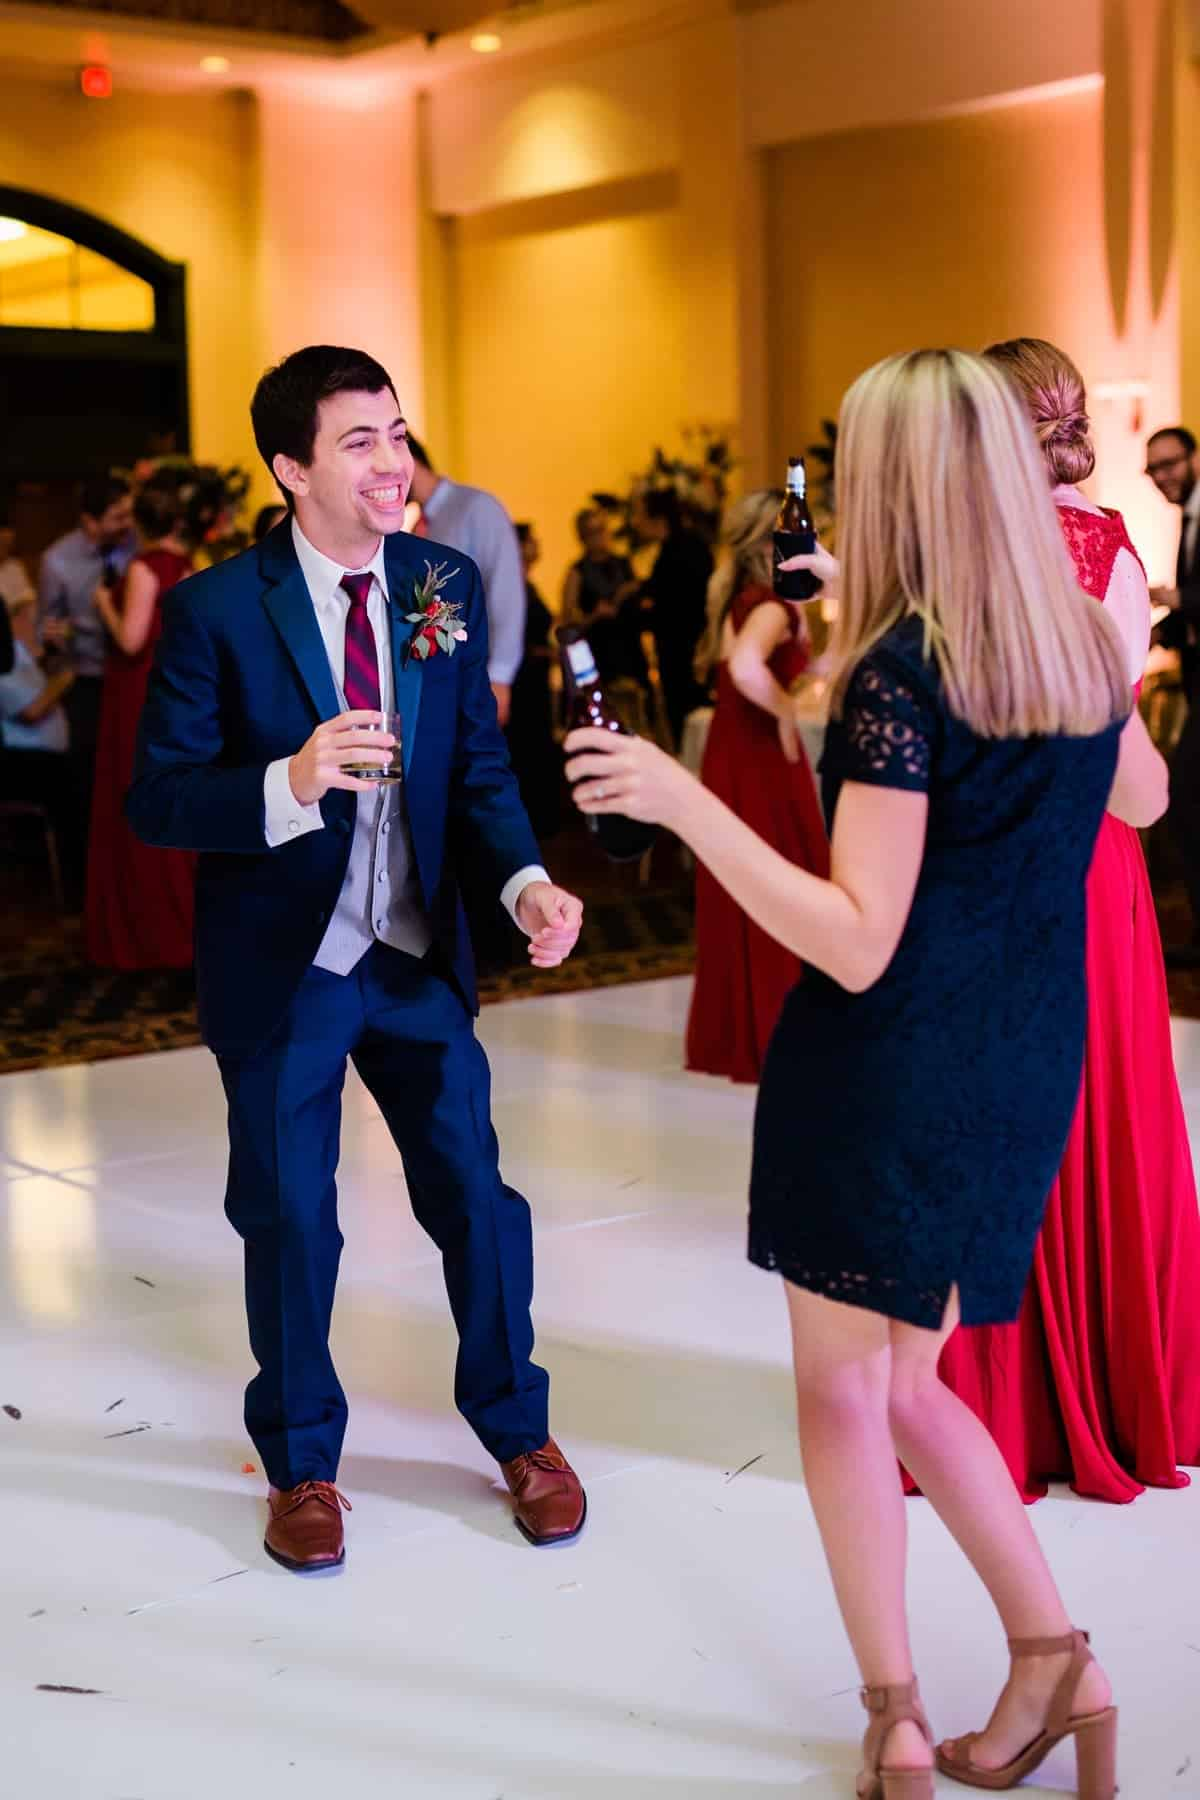 St. Louis Wedding Photographer, St. Charles Convention Center Wedding Reception, Wedding Reception Dancing